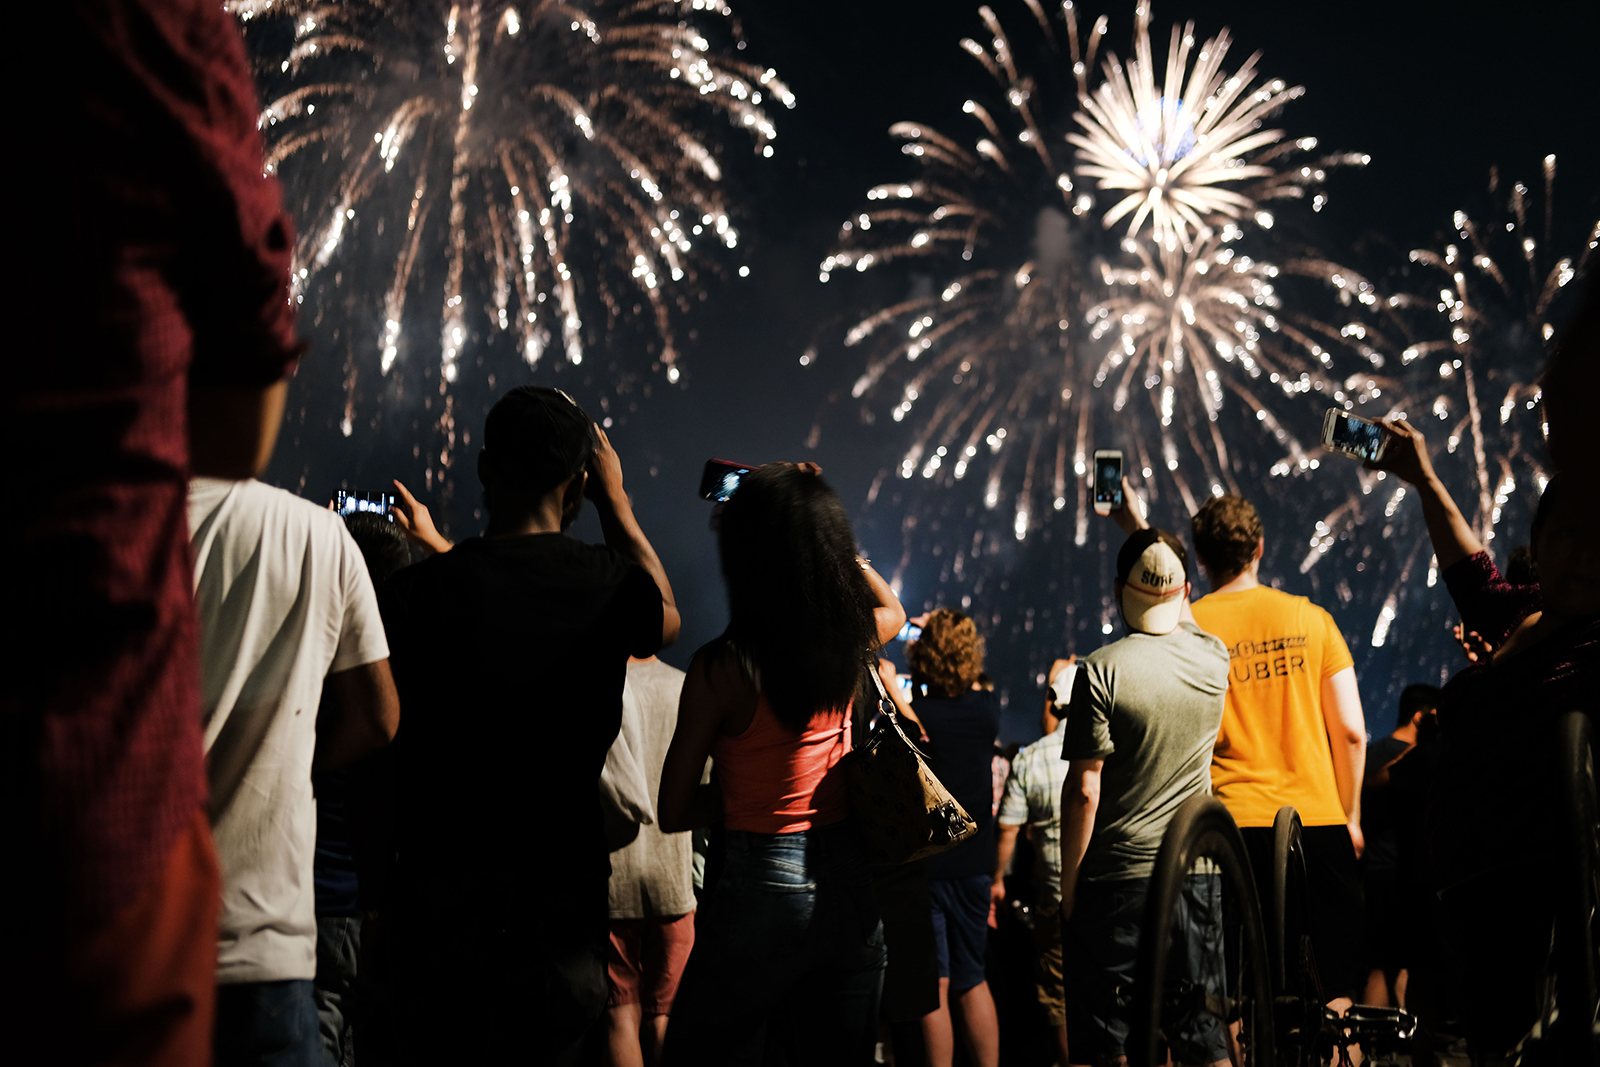 Fireworks and hand sanitizer could make for dangerous combination on July 4th